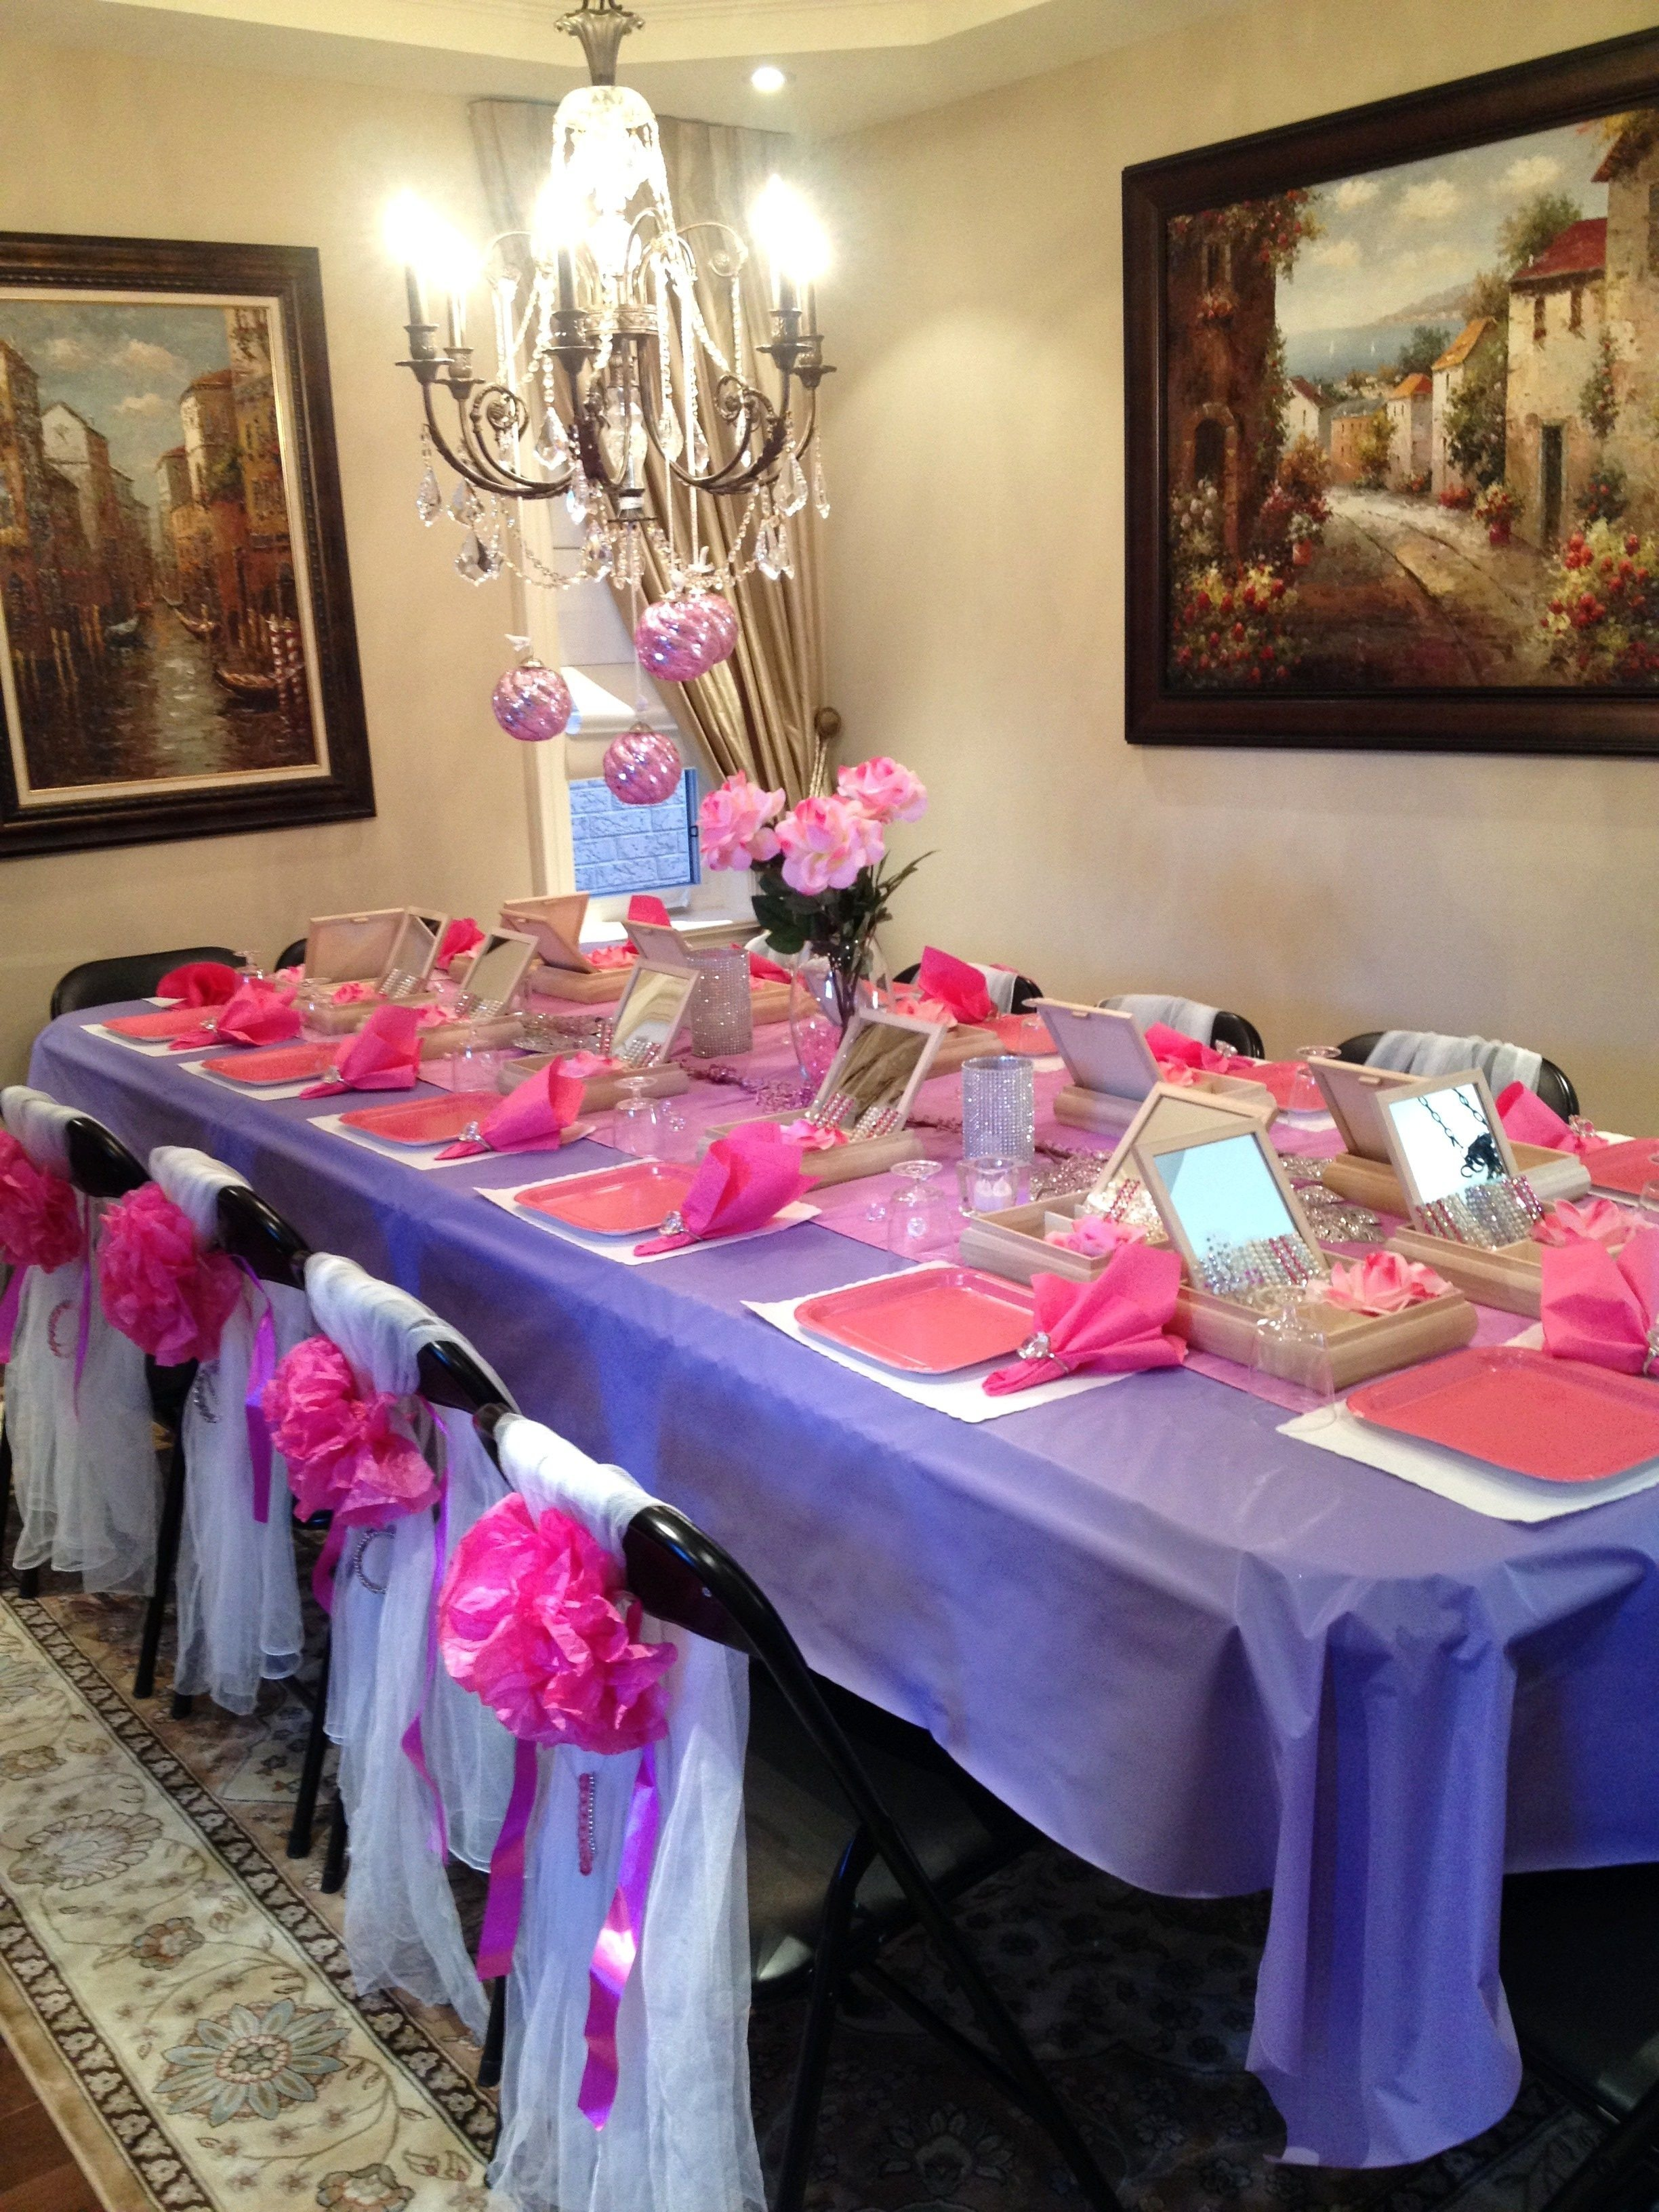 10 Gorgeous 5 Year Old Girl Birthday Party Ideas this momma went all out she created a beautiful table display to go 3 2020